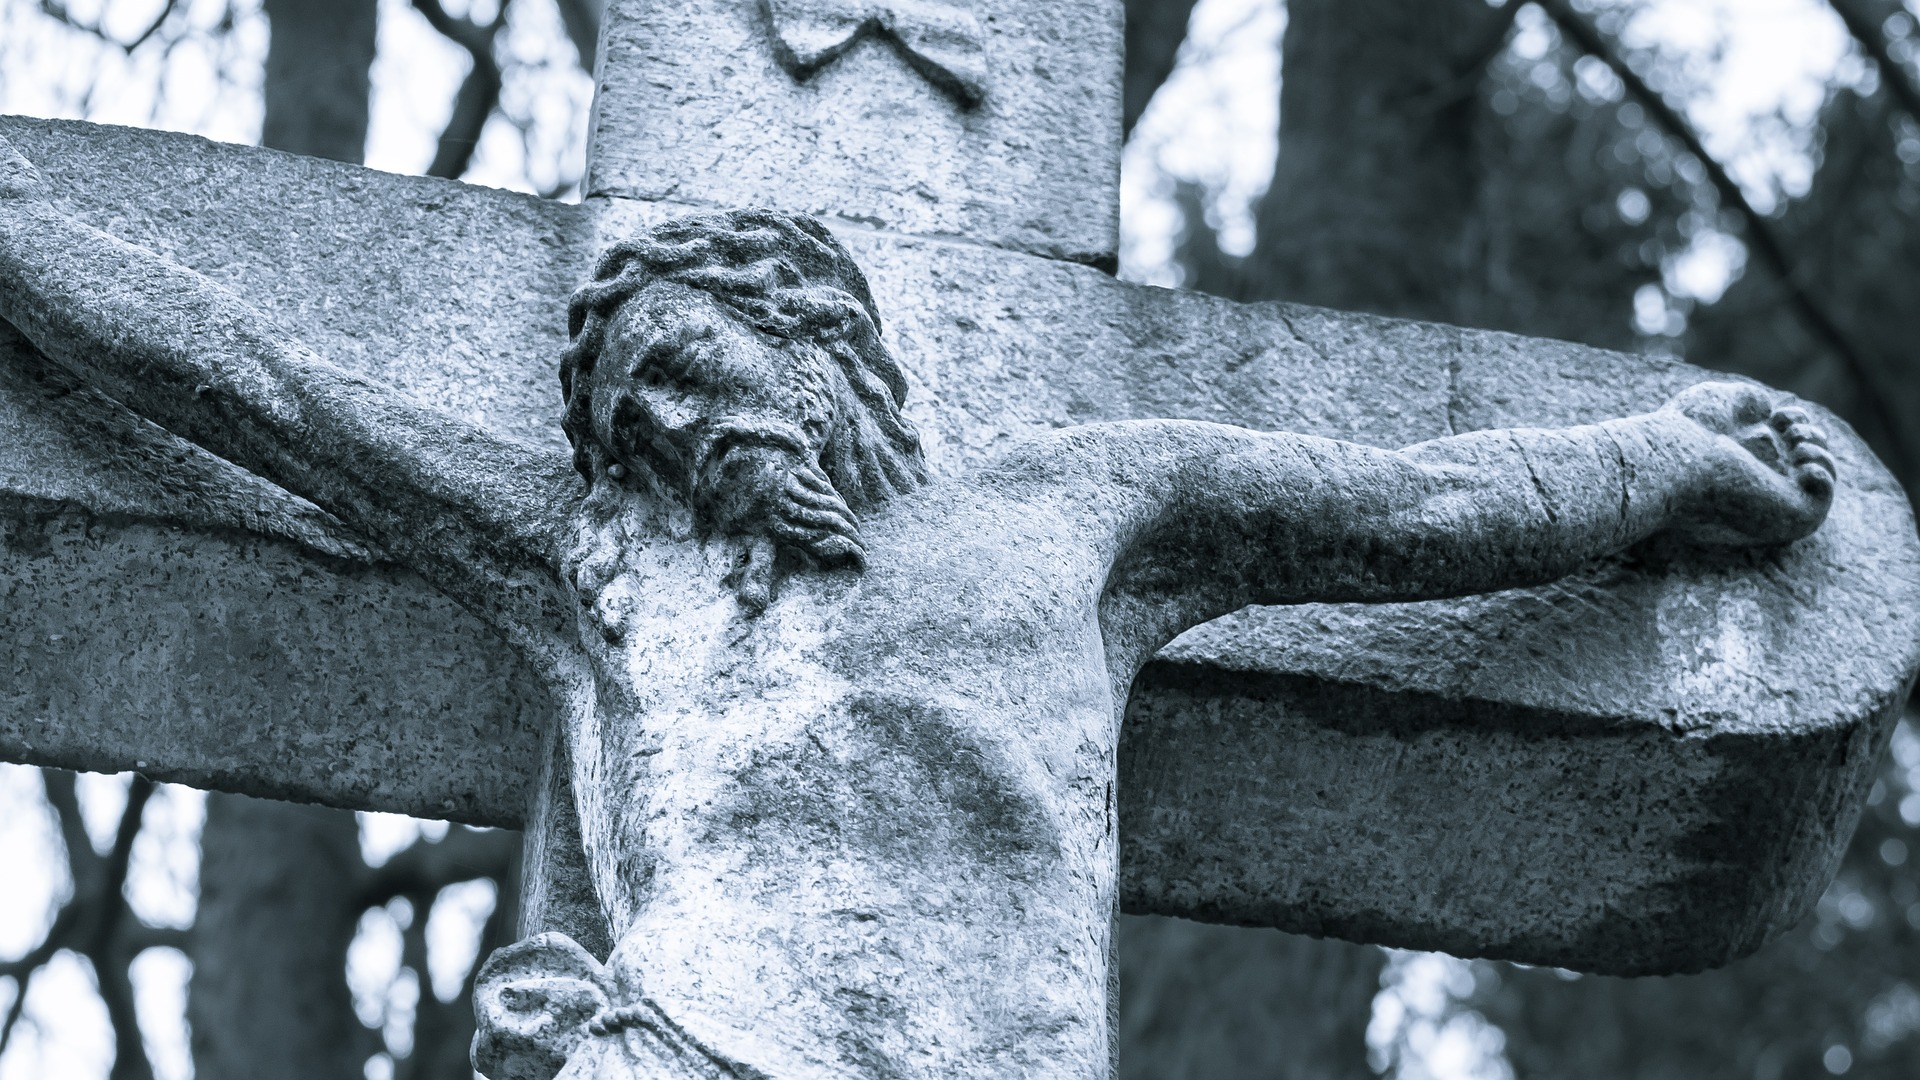 Pixabay - Jesus on the cross